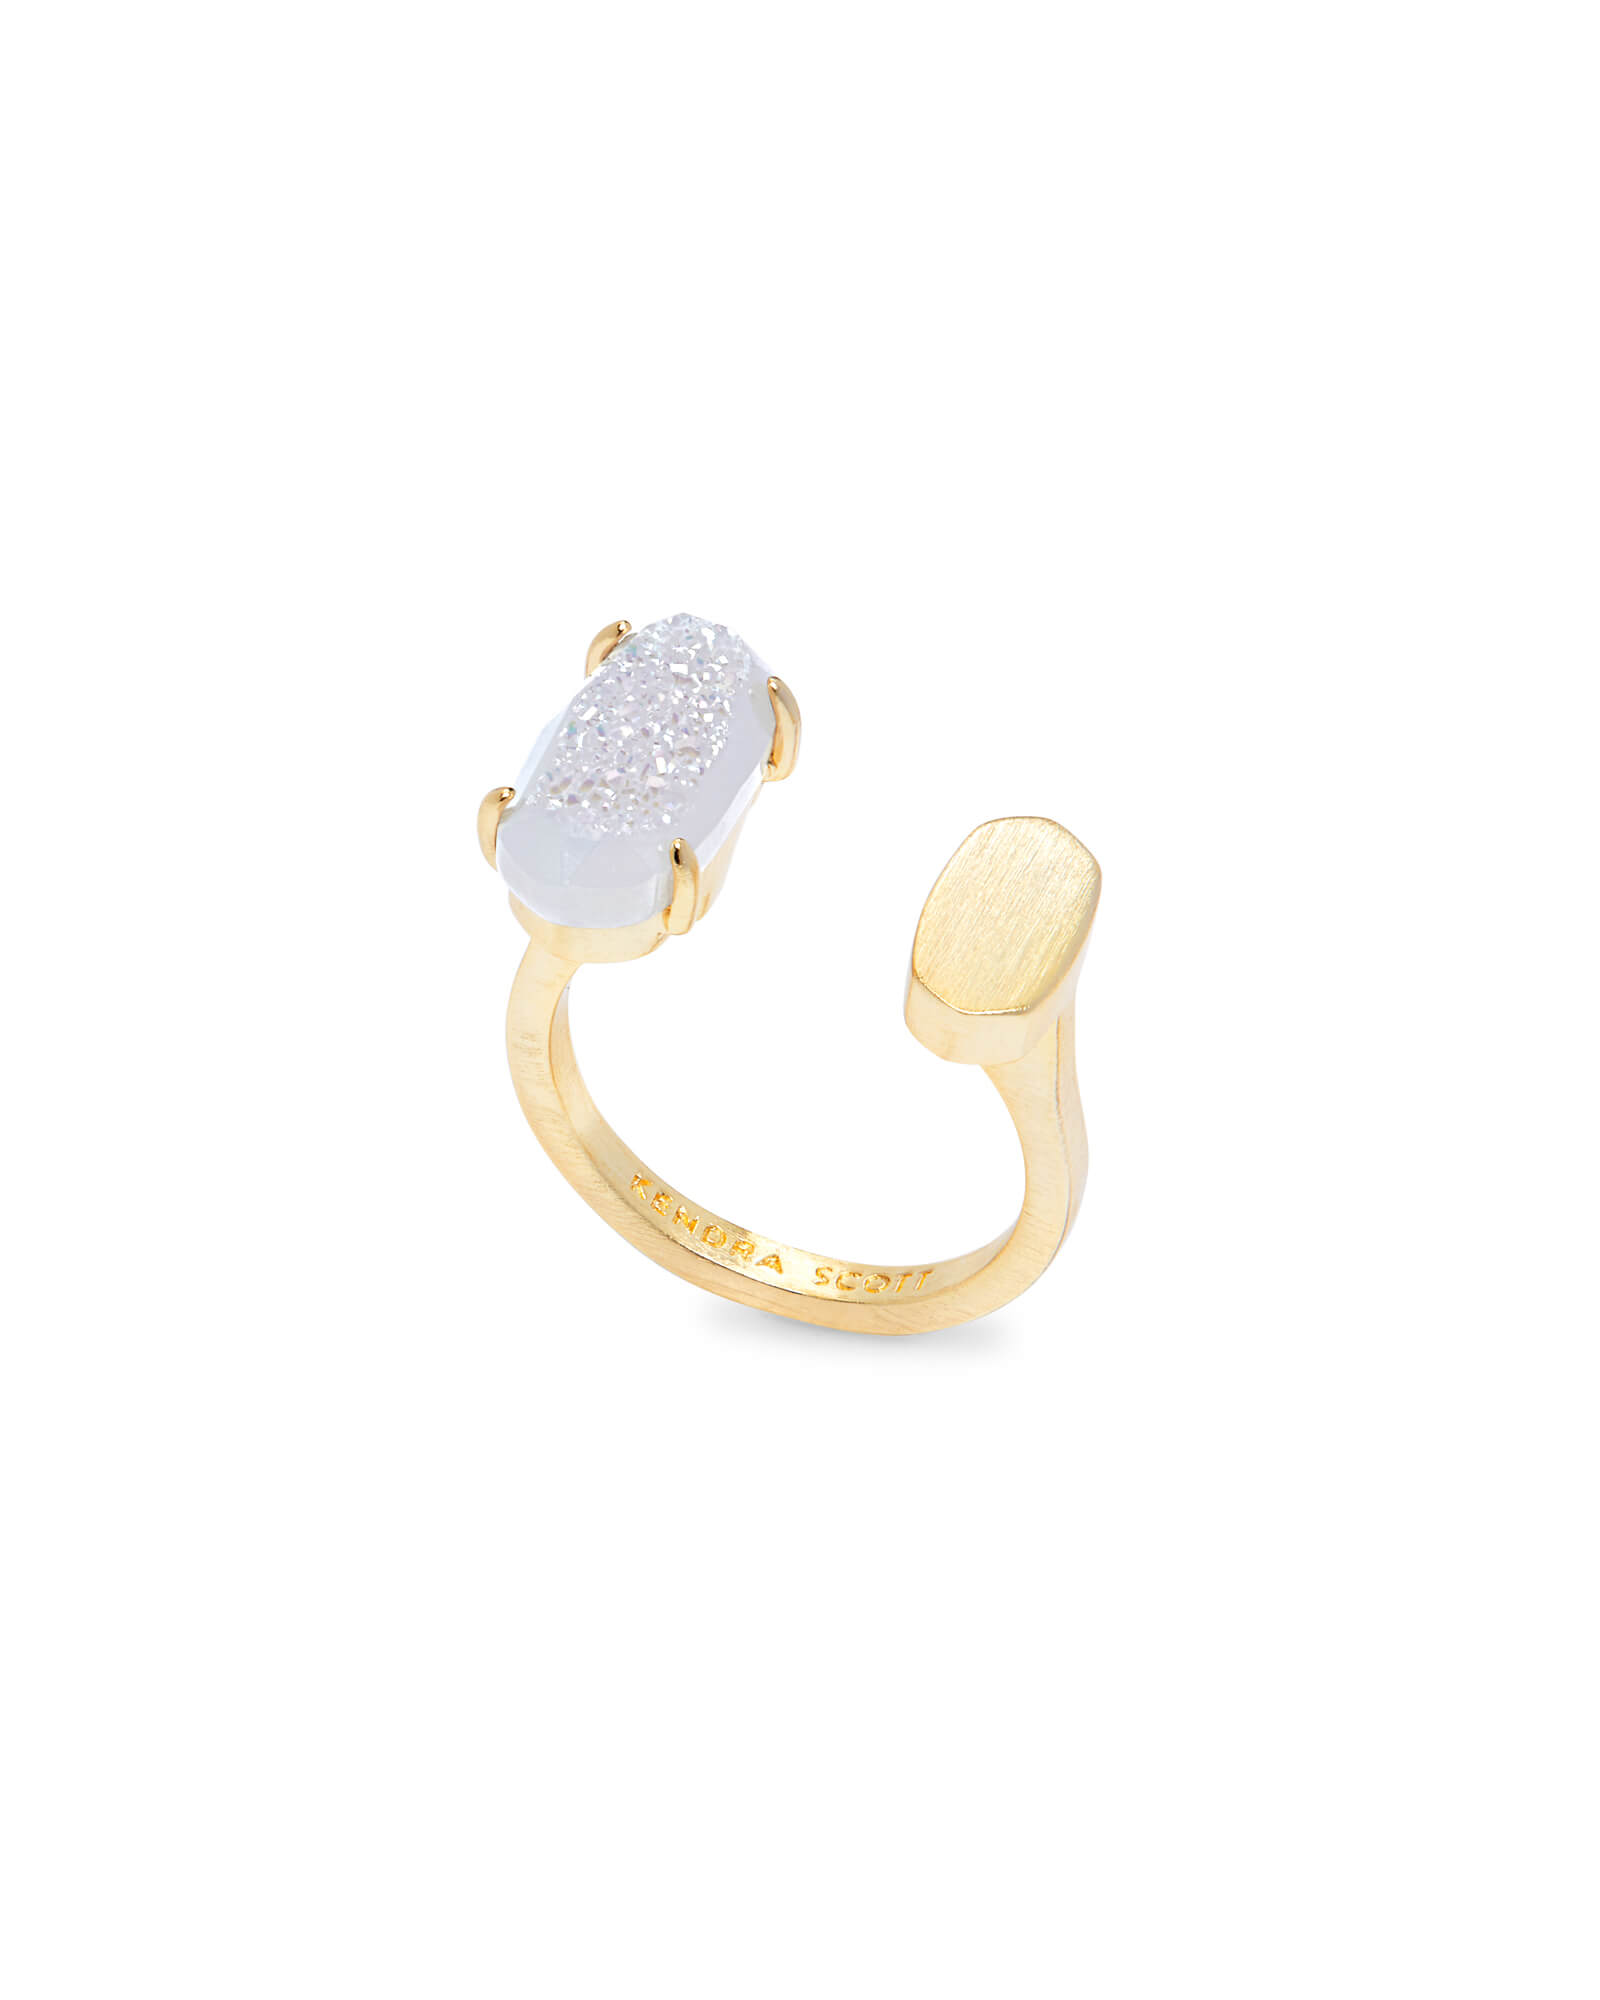 Pryde Gold Open Ring